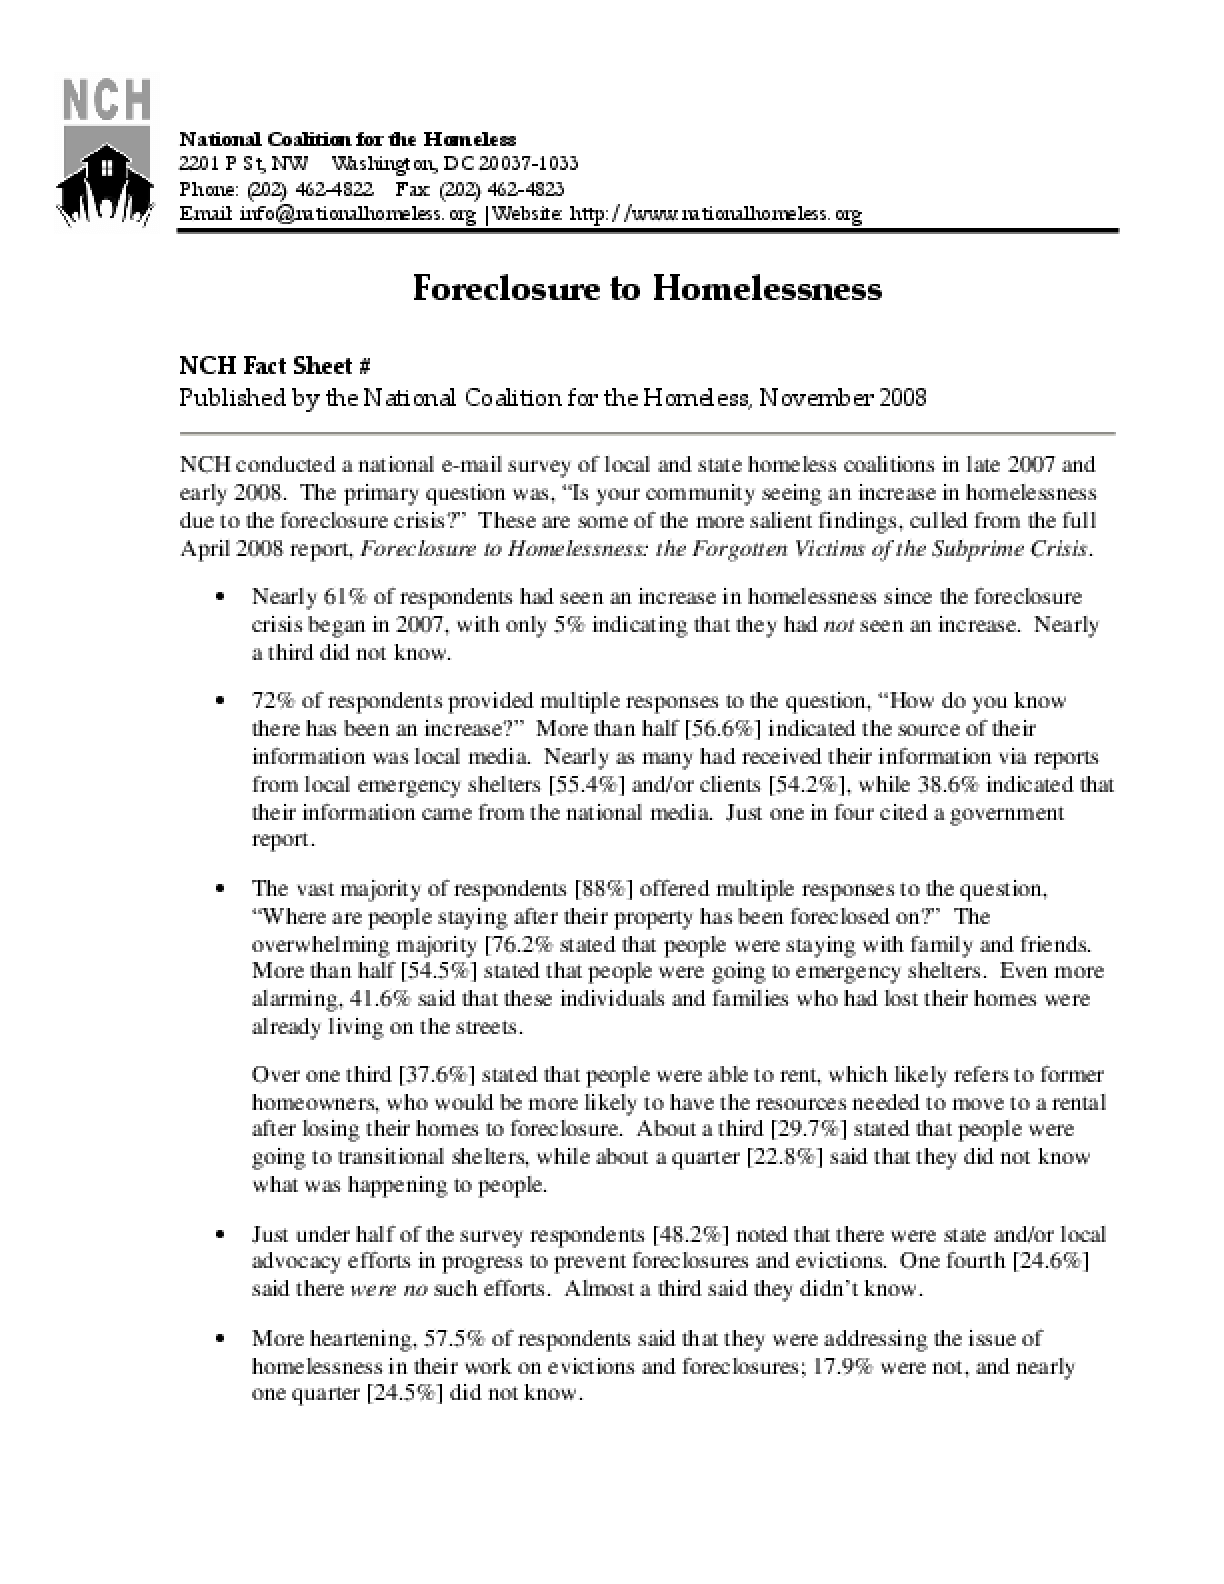 Foreclosure to Homelessness Factsheet